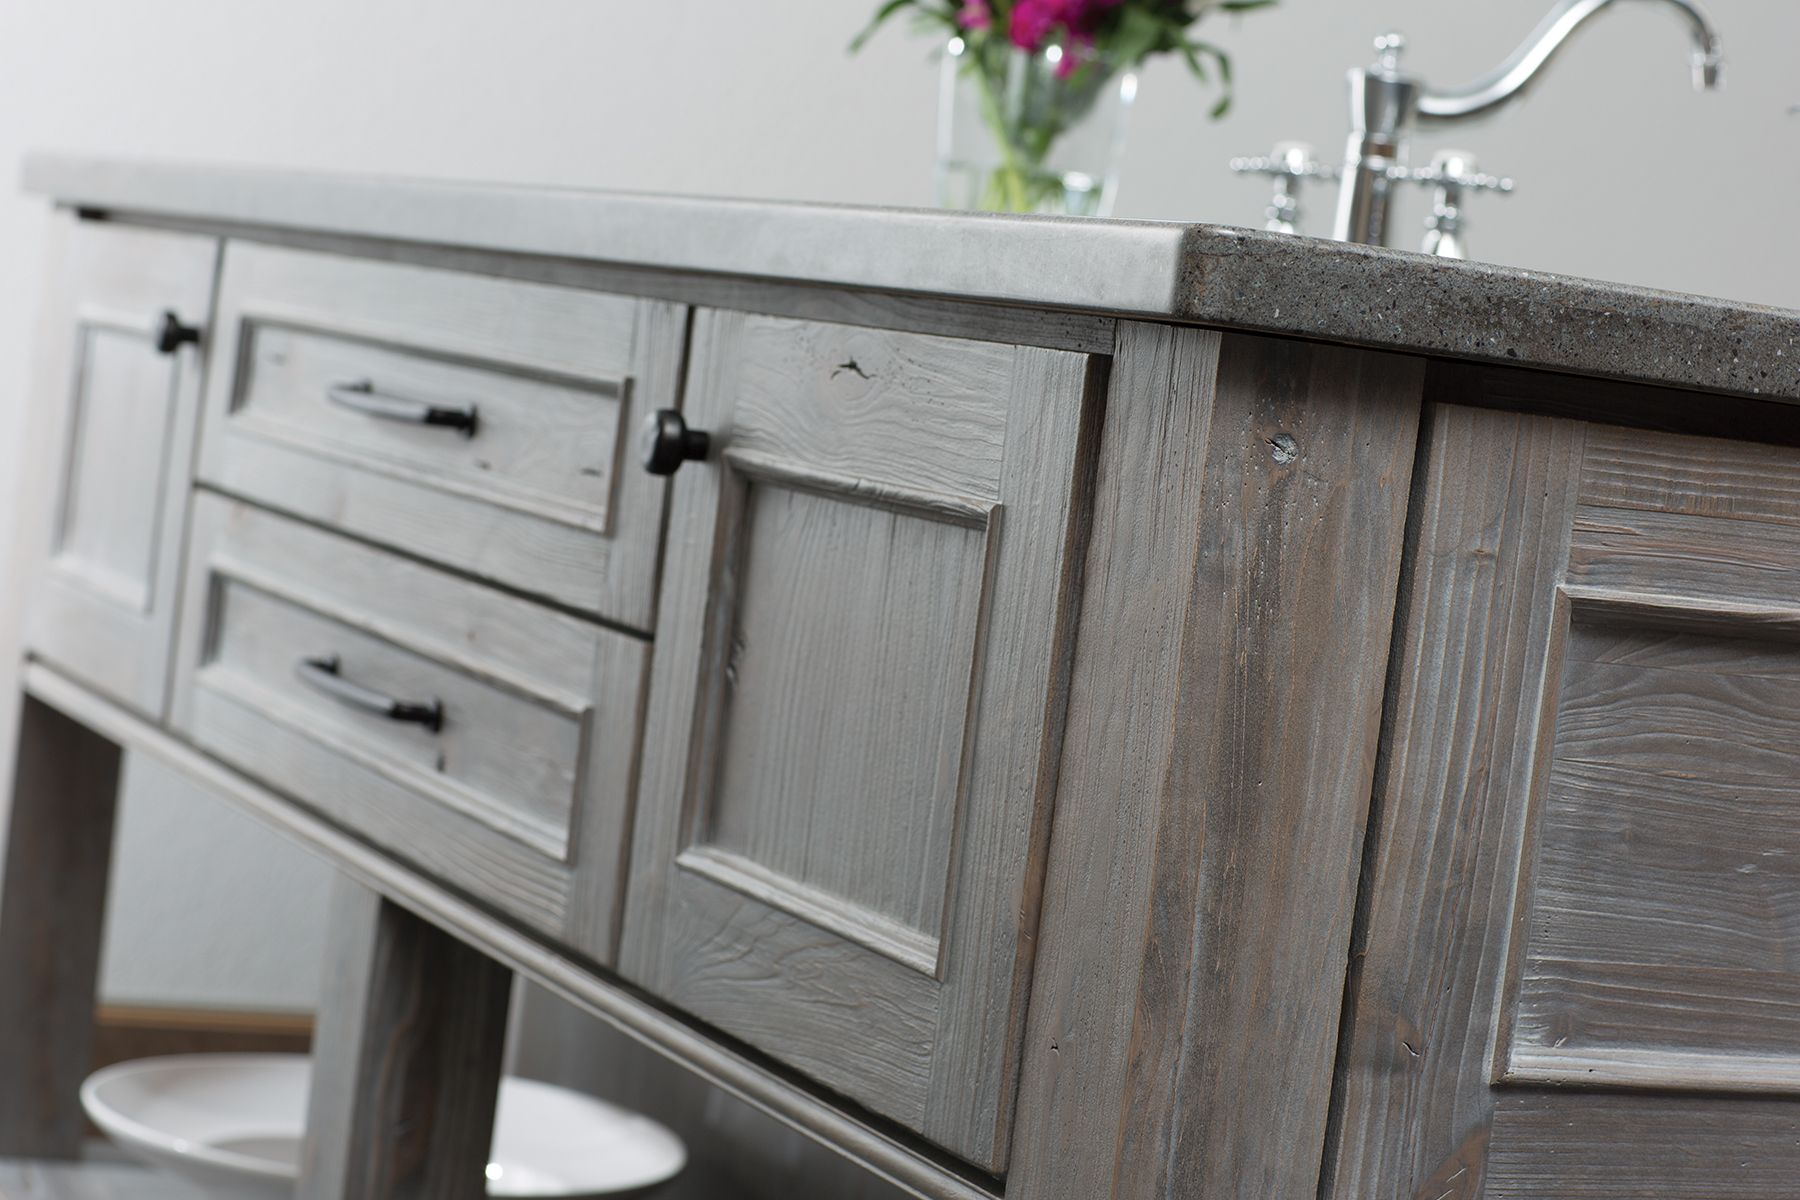 dramatic #distressed #cabinet finishes from dura supreme - dura